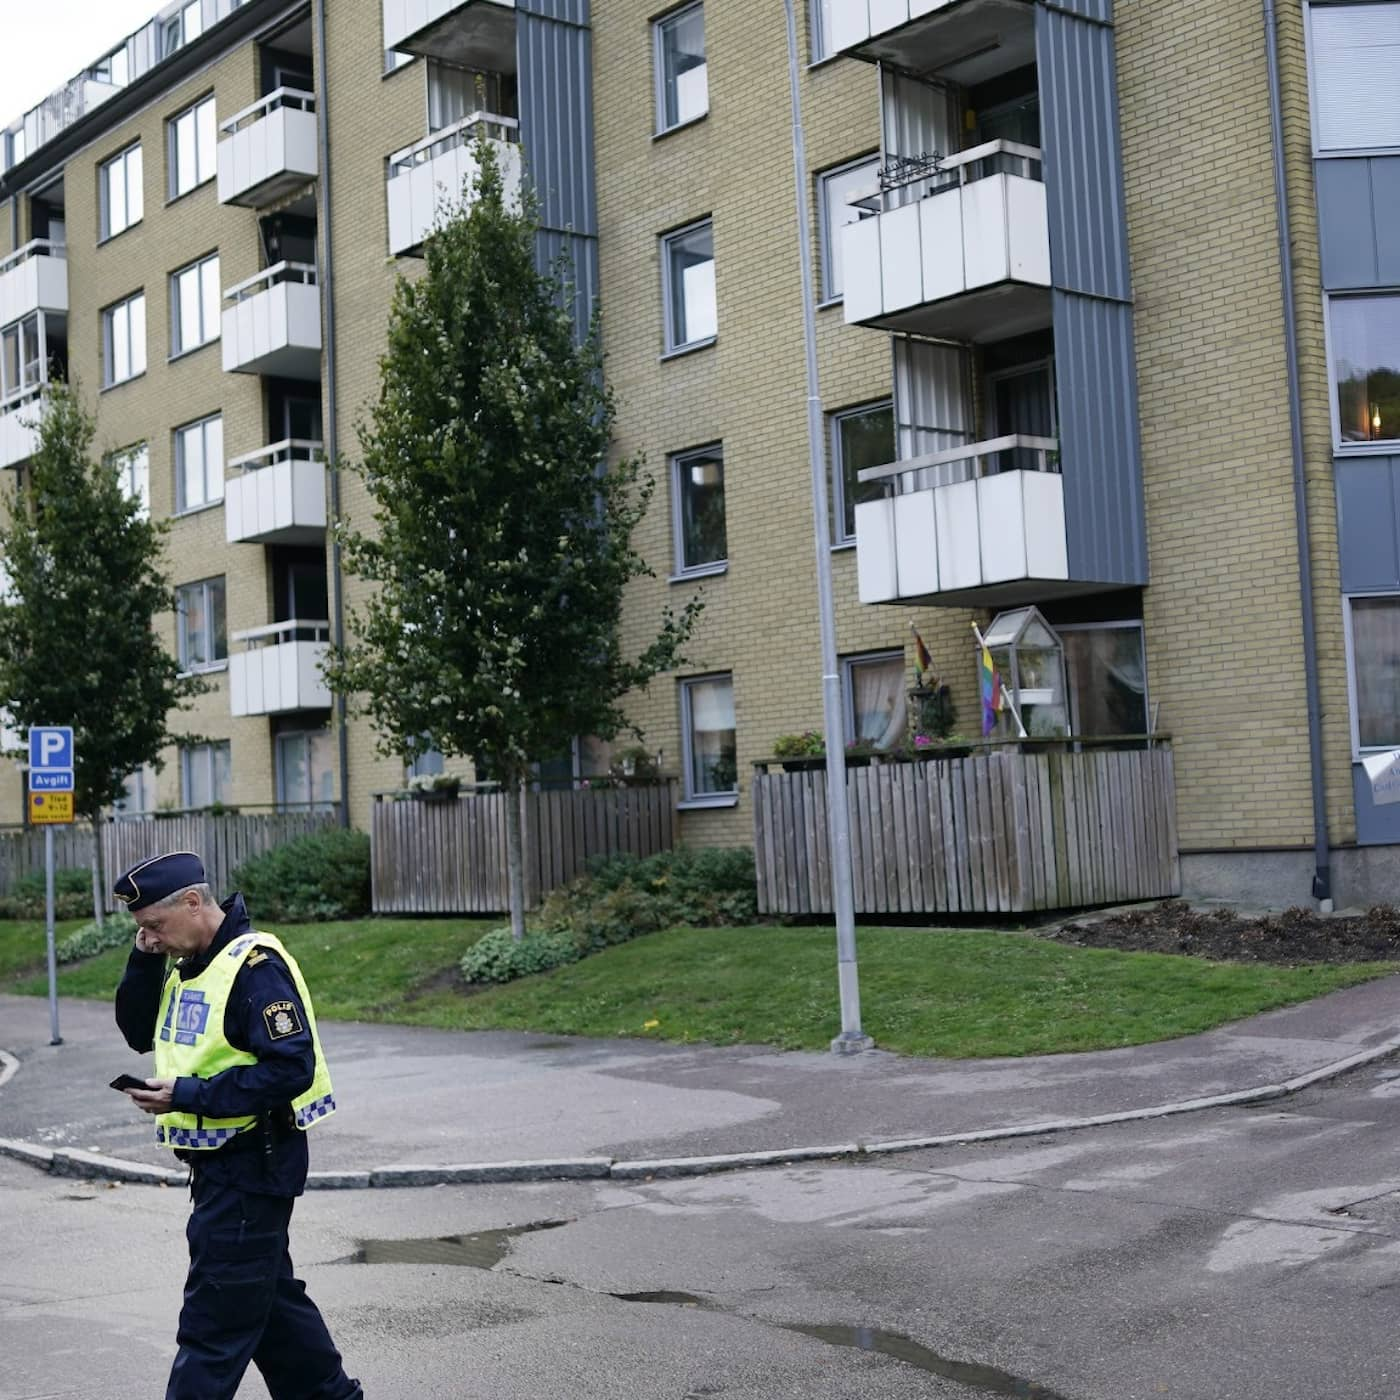 Gothenburg manhunt continues, MP investigation dropped, RS-virus outbreak among kids, record-high electricity prices, autumnal weather